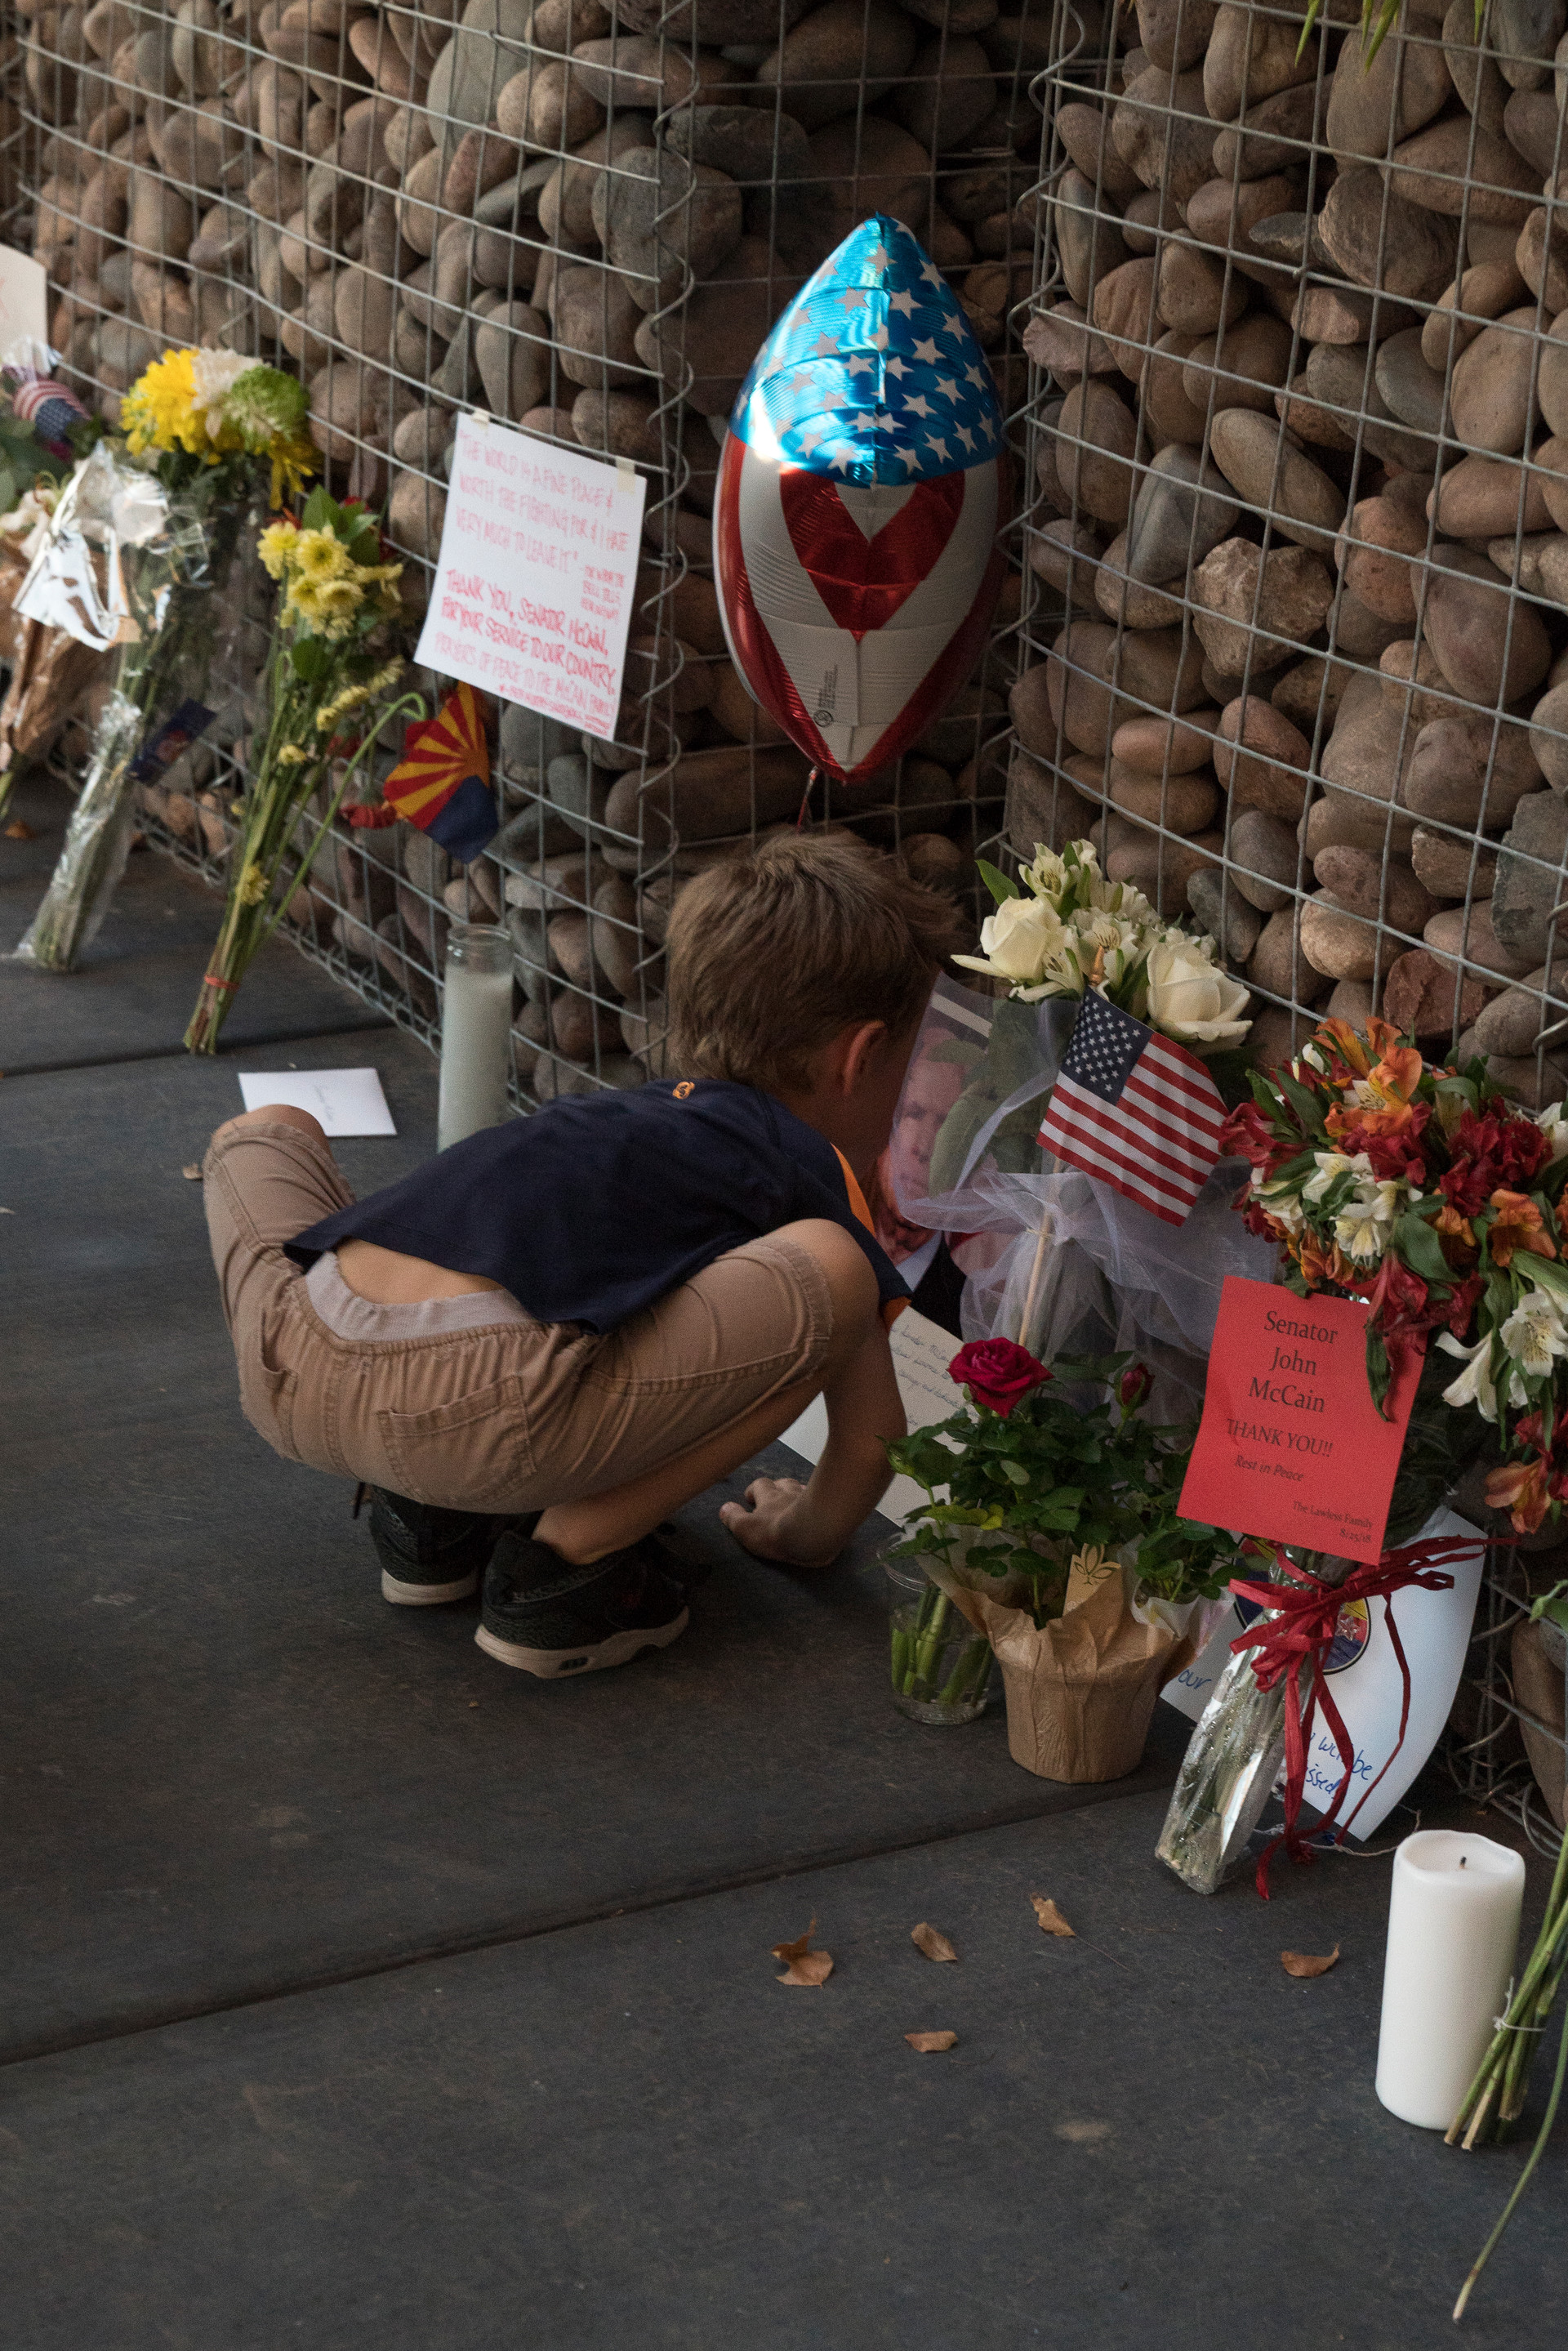 A young boy kisses a portrait of the late Senator John McCain at the Vietnamese Association of Arizona memorial for McCain at his office in Phoenix, Arizona on Sunday, August 26, 2018.